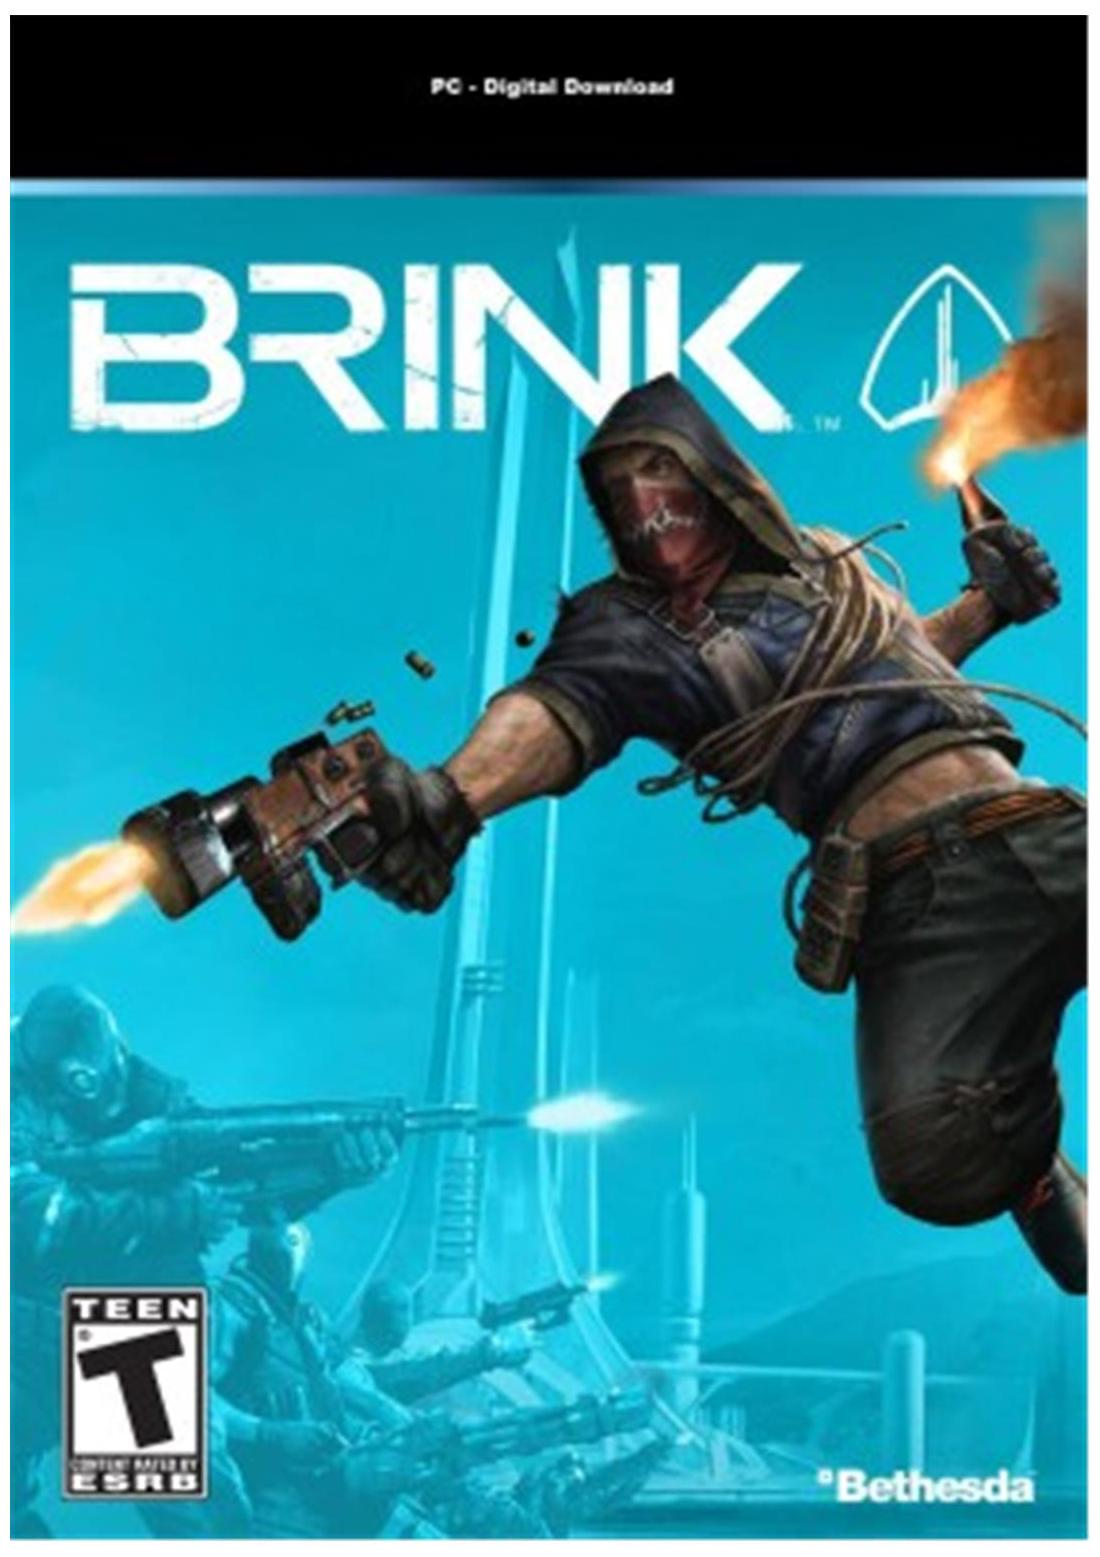 Brink For PC (Digital Game) Paytm Mall Rs. 17.00